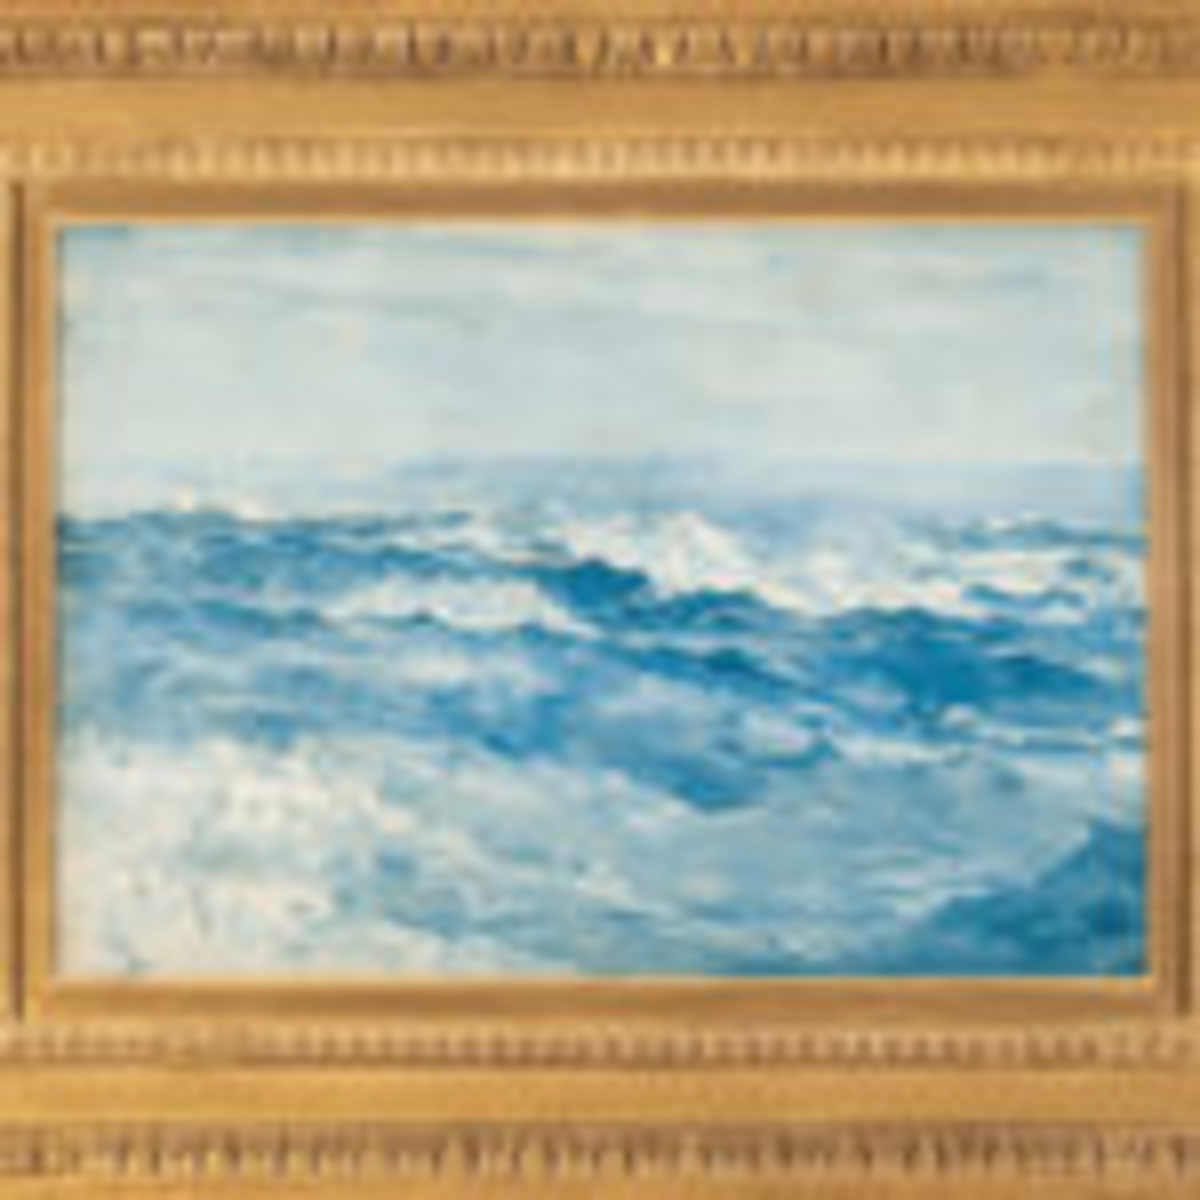 Light Blue Sea at Prouts Neck by Winslow Homer. Courtesy of MS Rau